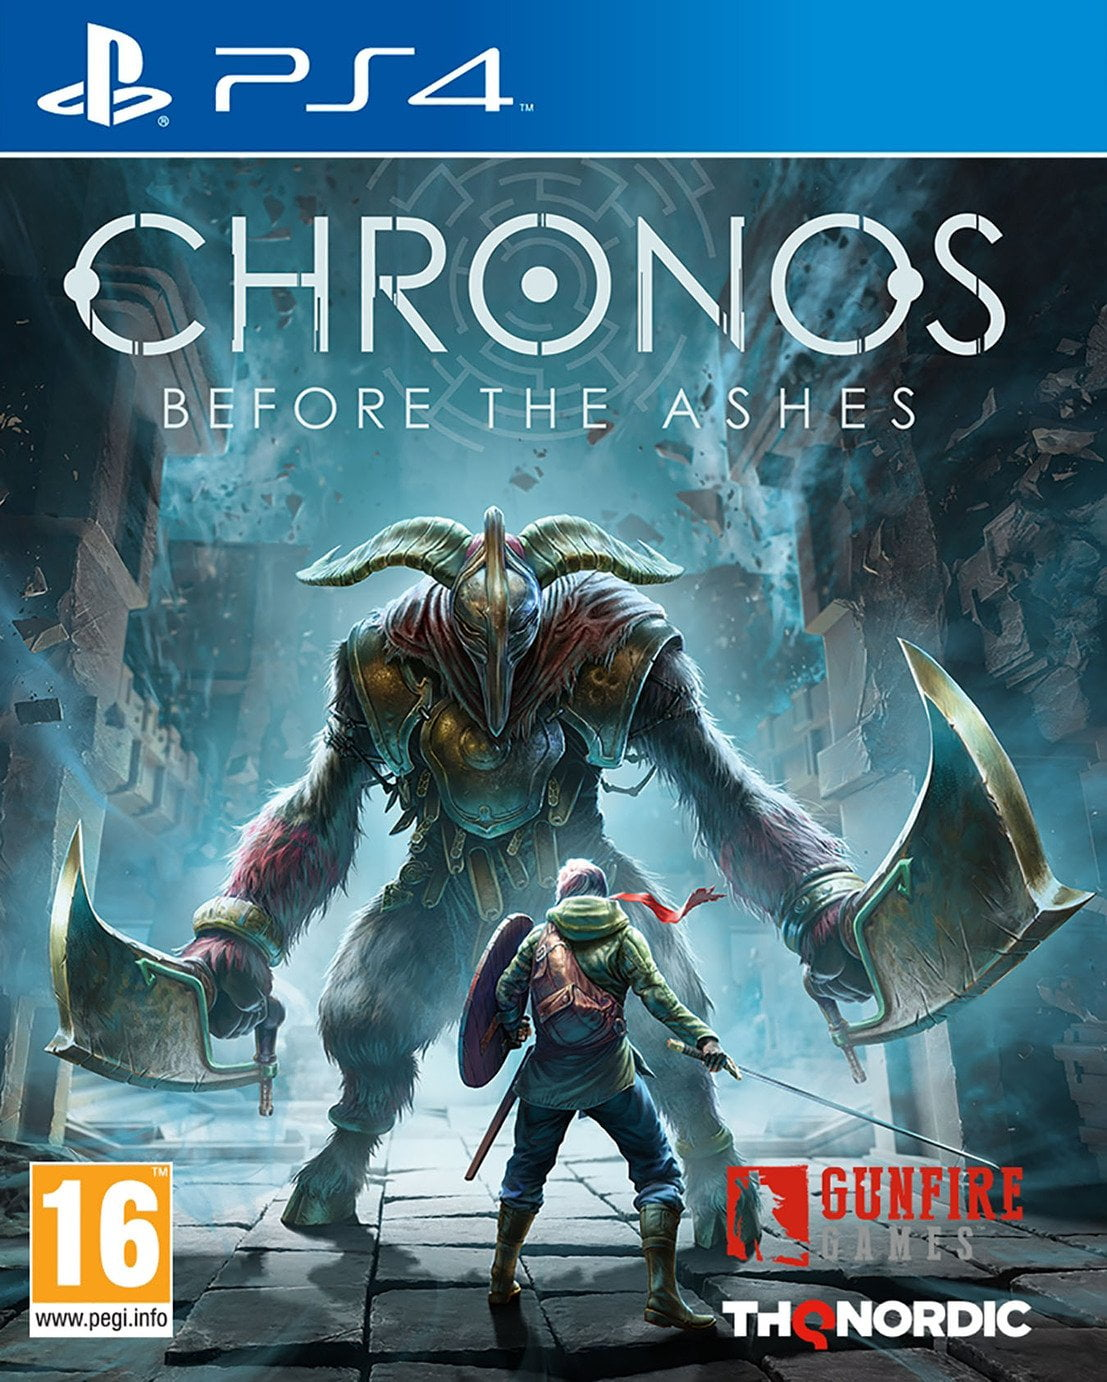 Chronos: Before the Ashes PS4 Game Pre-Order